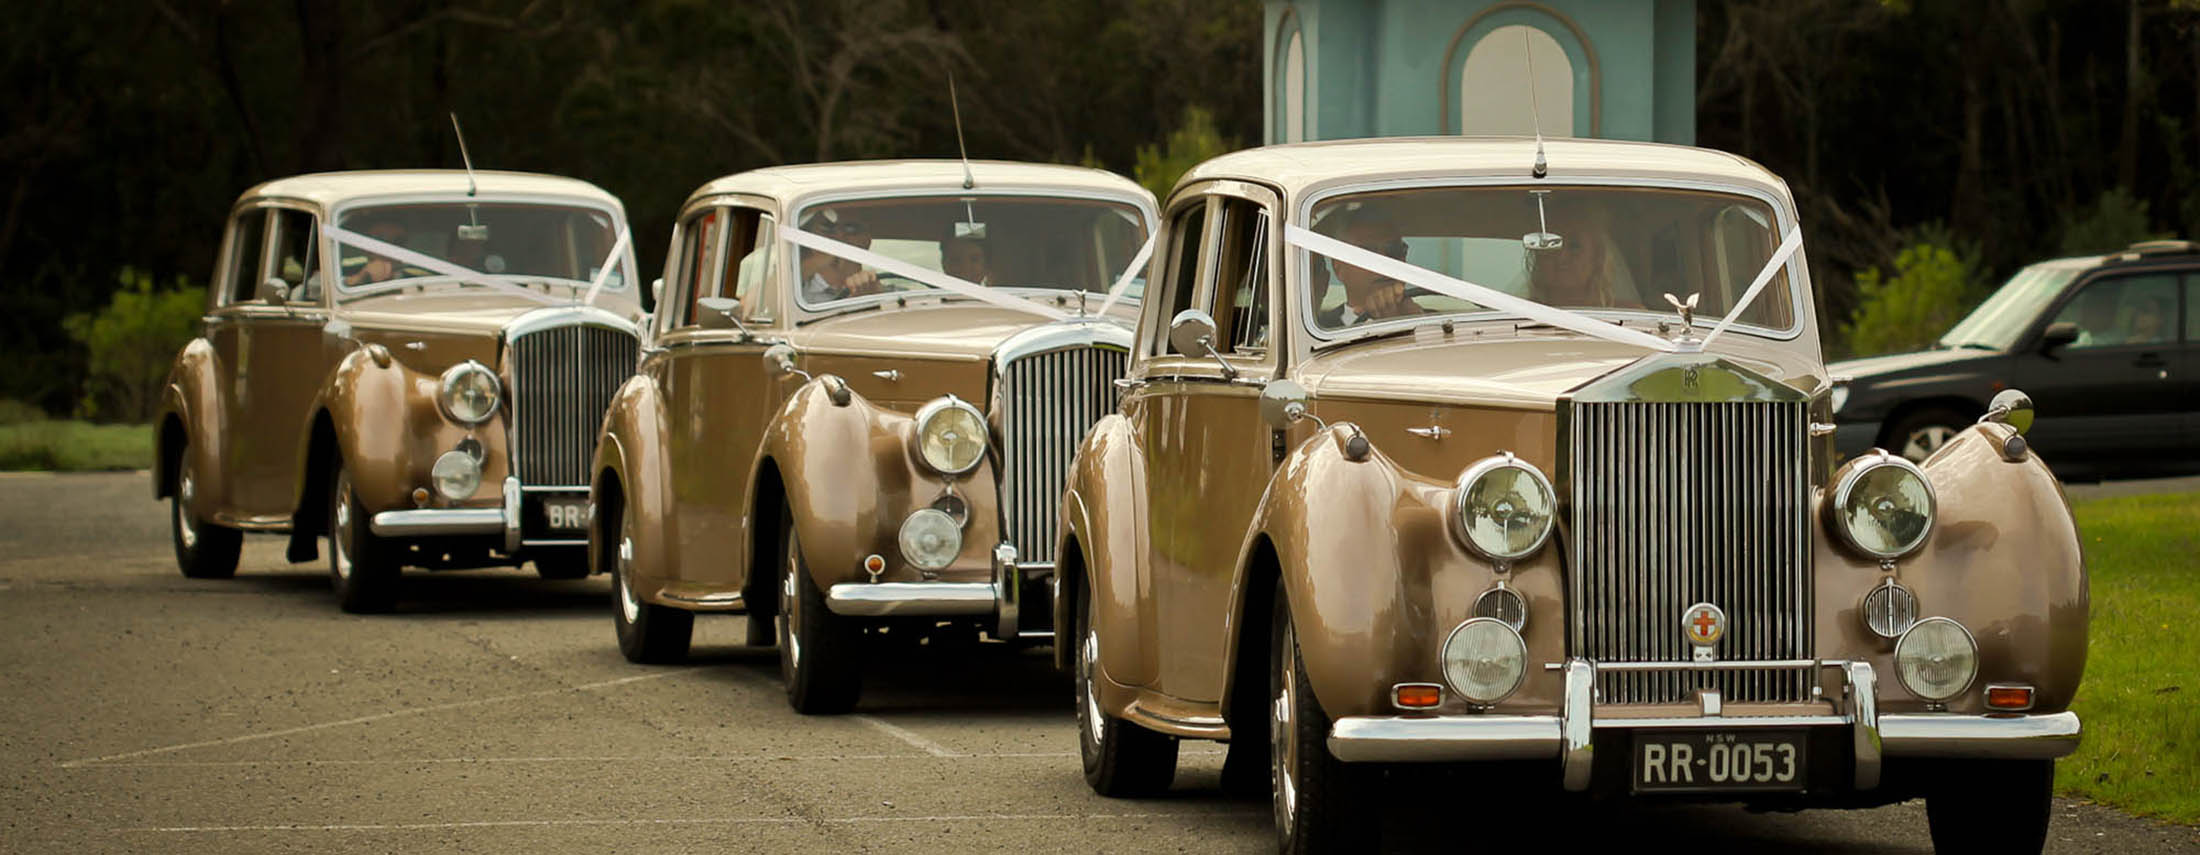 Hire Classic Wedding Cars In Sydney - Abridalaffair.com.au